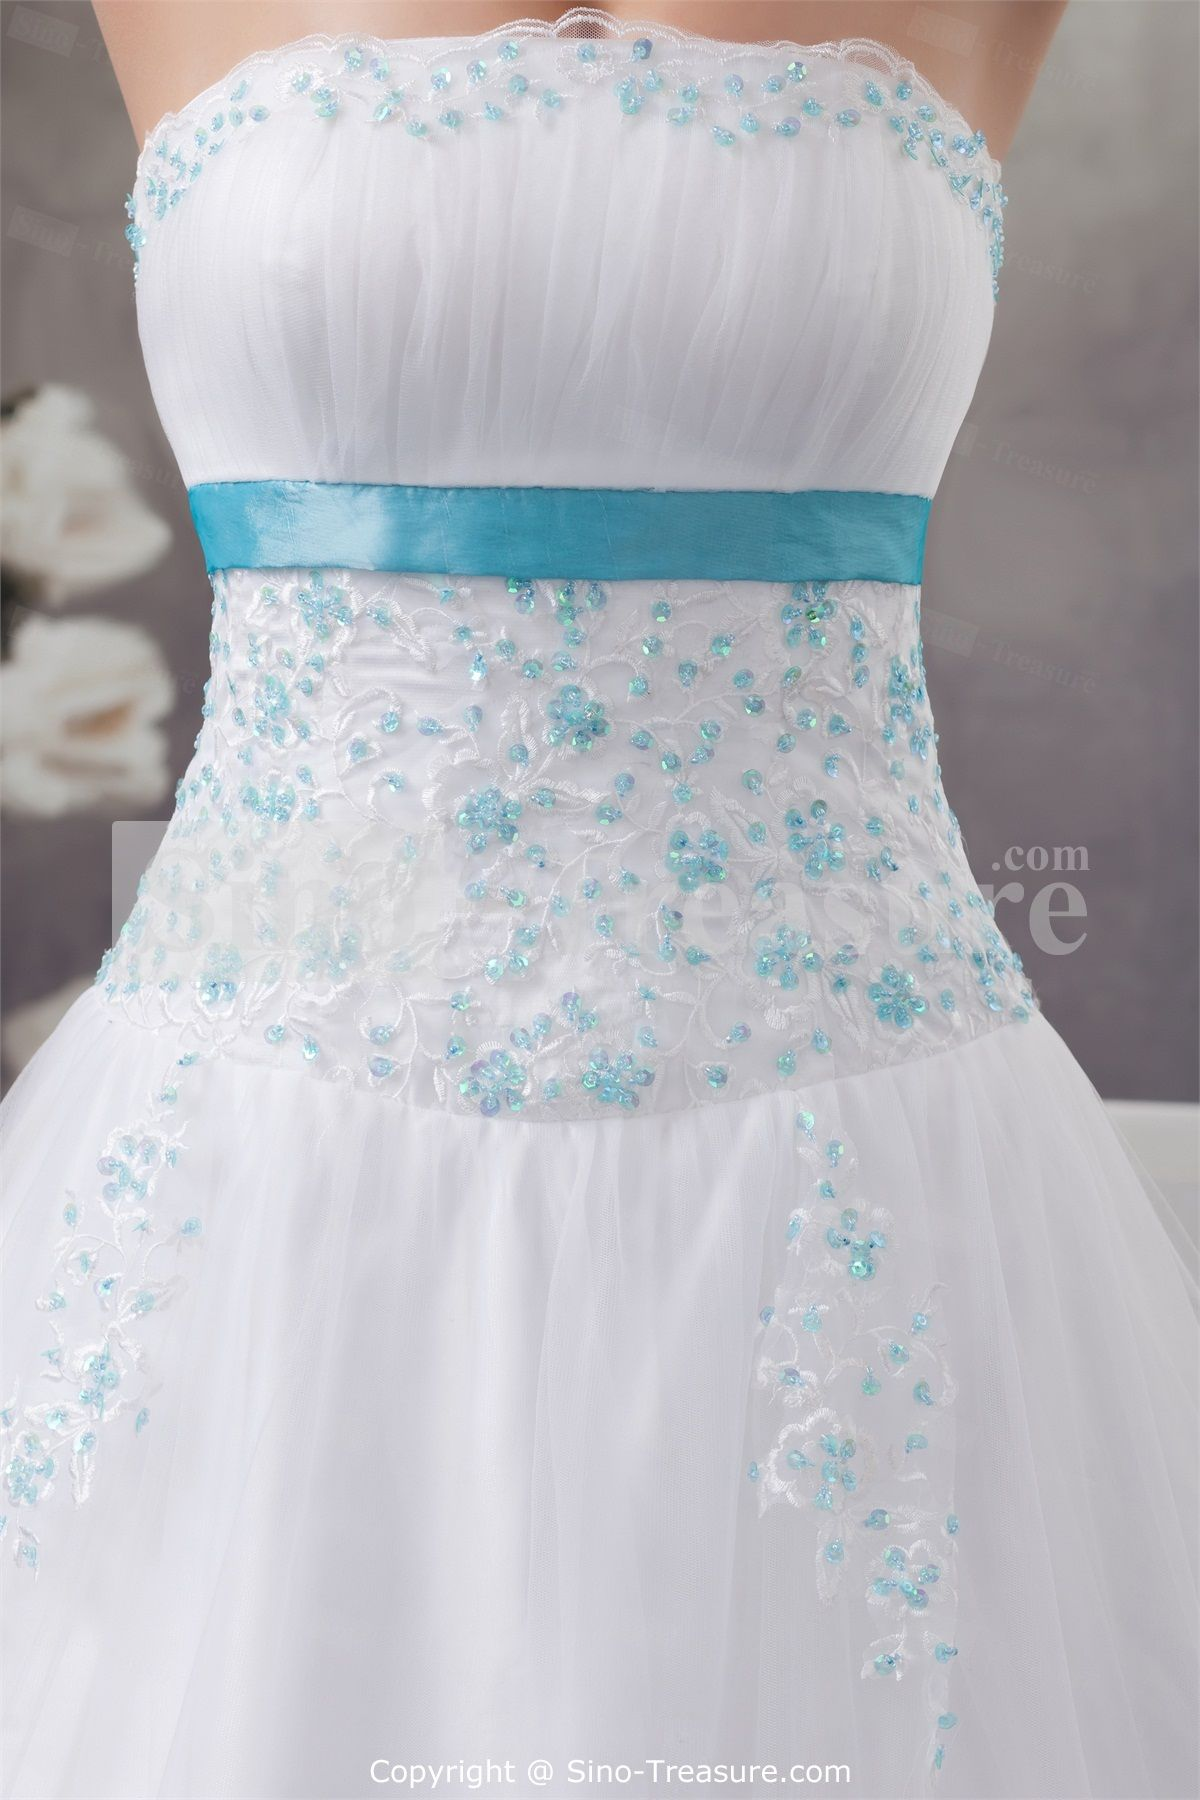 wedding dresses with blue bling wedding gown Wedding Dresses Ball Gown With Bling Strapless